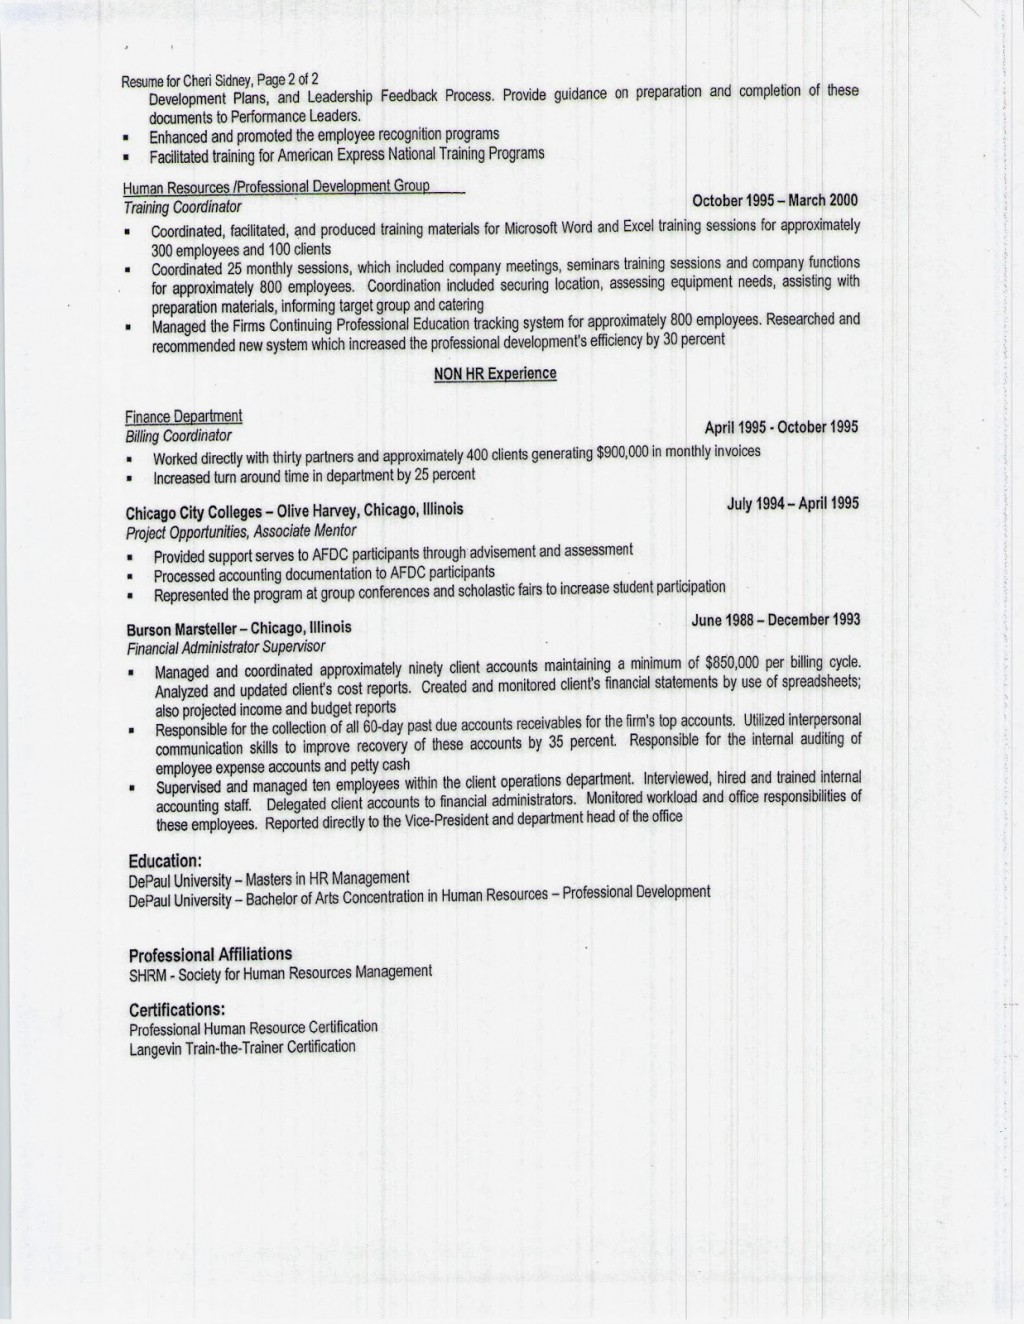 027 Essay Example Nursing Application Tips How To Write An Letter With Apply Forhip And Sidney0001 Jpg W 1237x1600px Singular Scholarship Rotc Psc Reddit Large